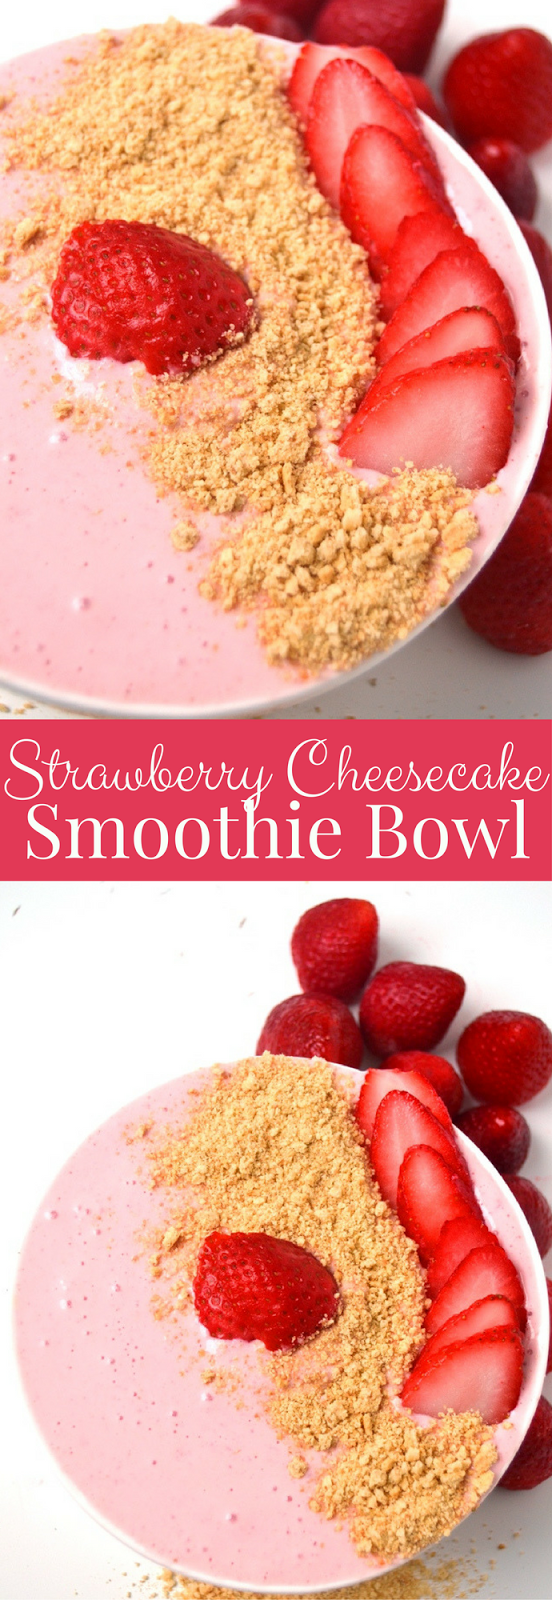 Strawberry Cheesecake Smoothie Bowl is a 5-minute nutritious treat that tastes like your favorite cheesecake and is topped with sliced strawberries and graham crumbs! www.nutritionistreviews.com